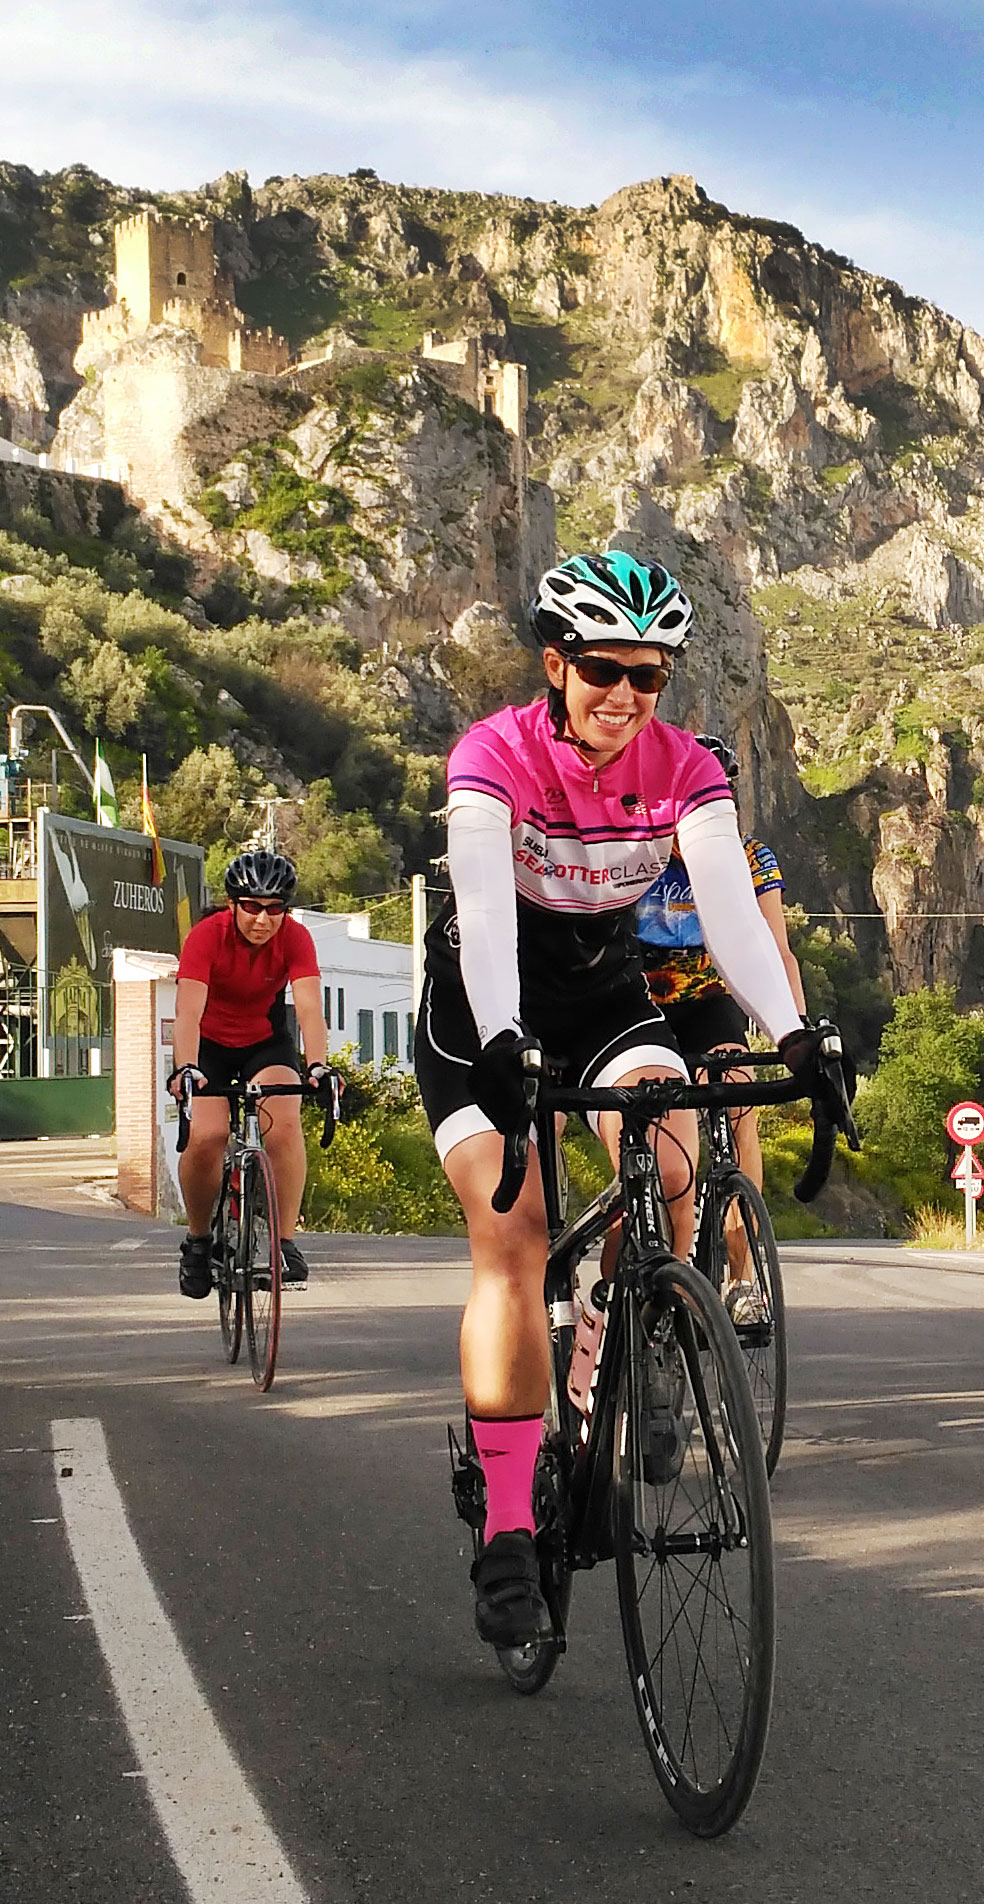 Cycling in a Group in Andalucia